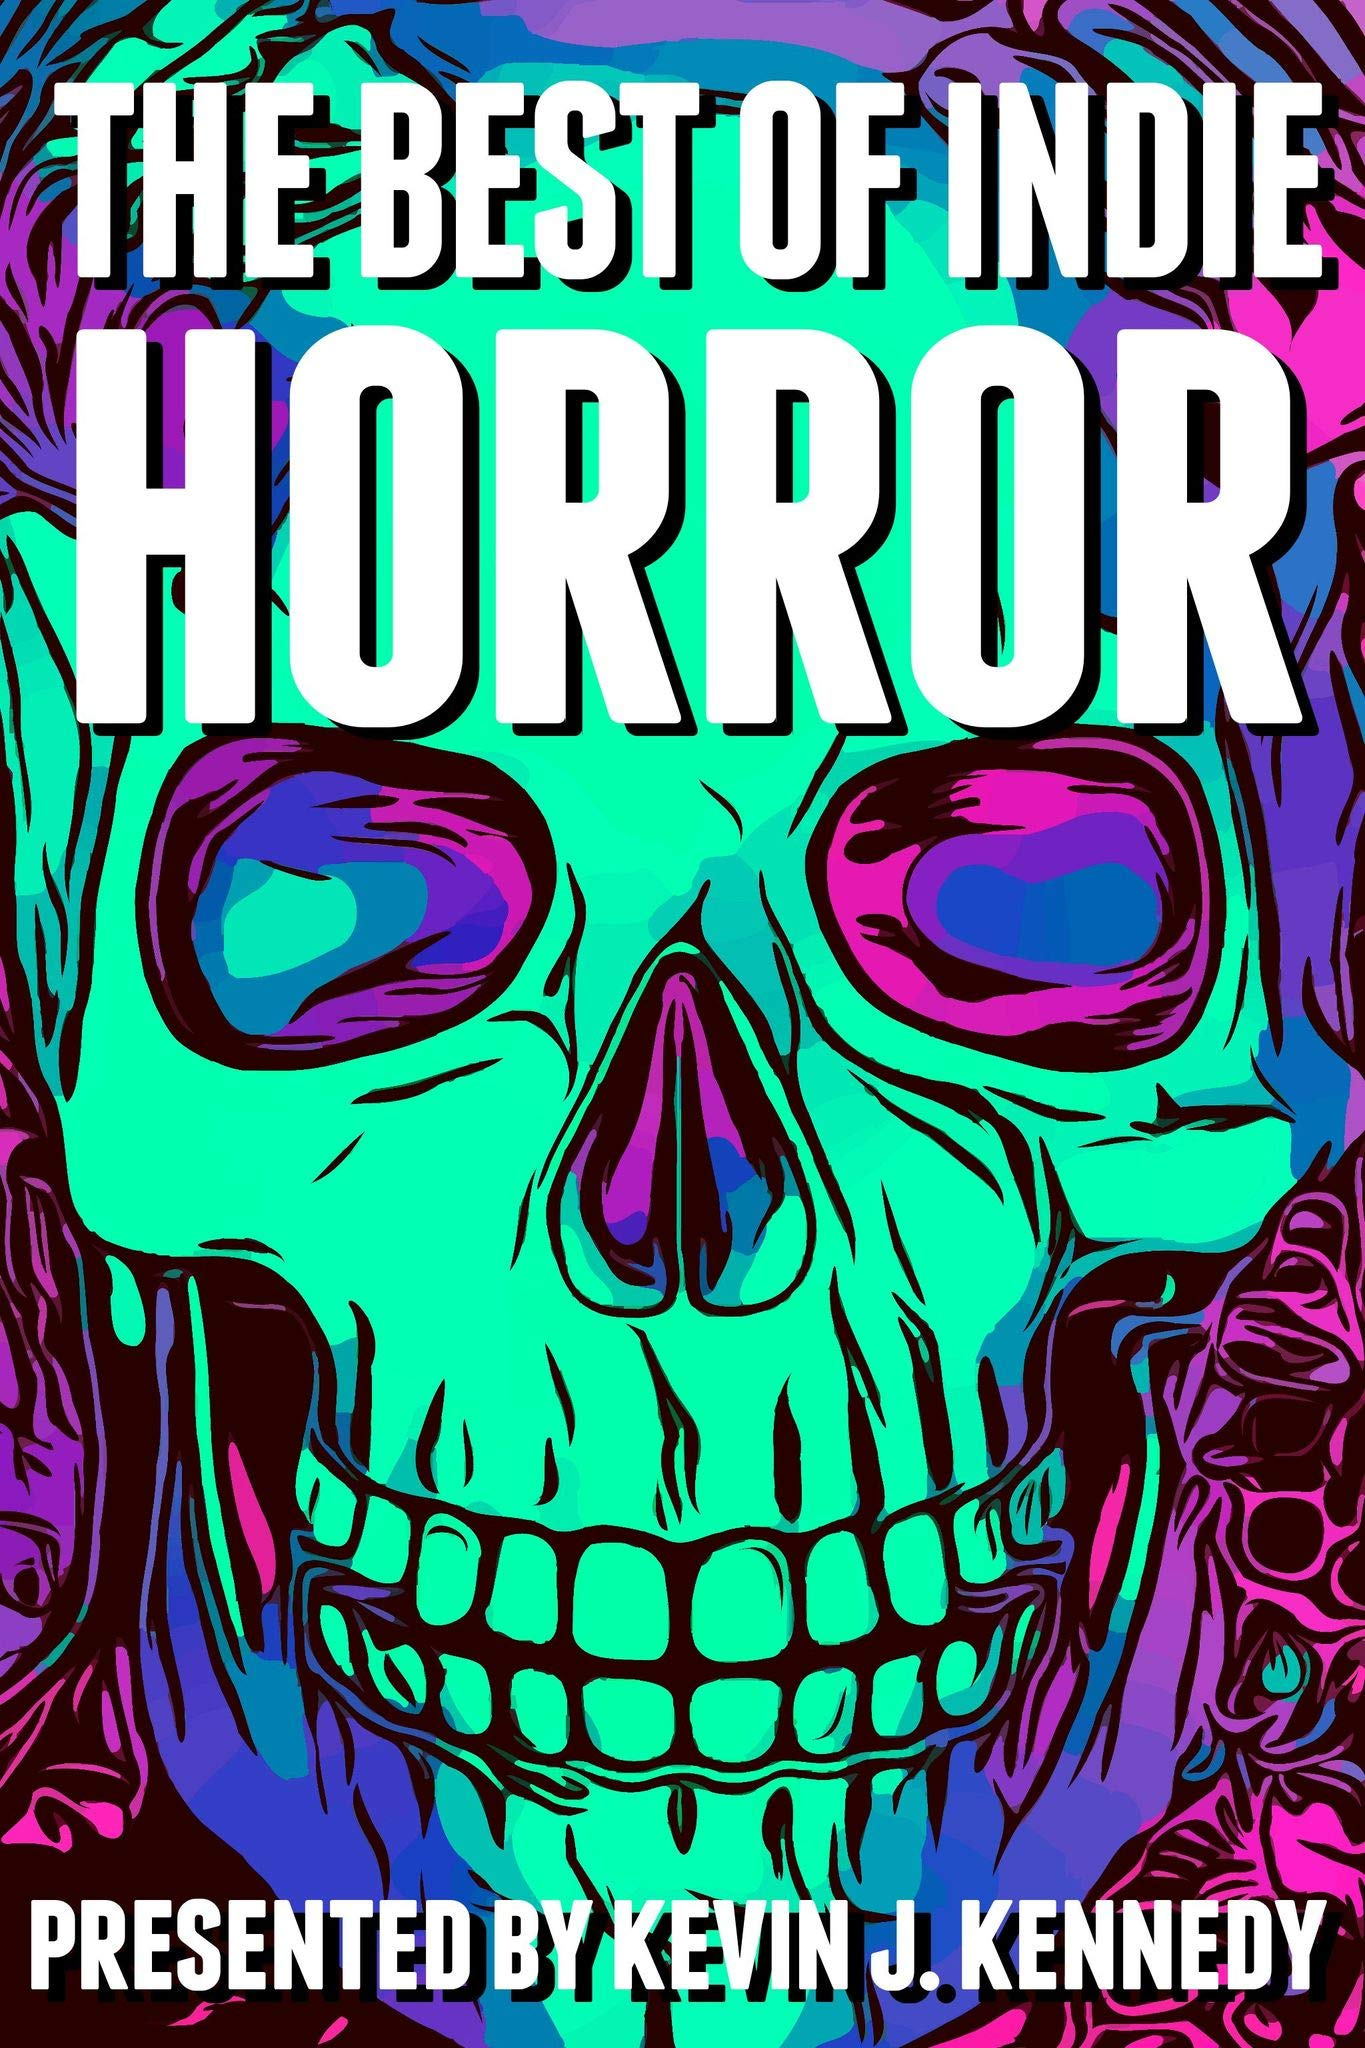 The Best of Indie Horror